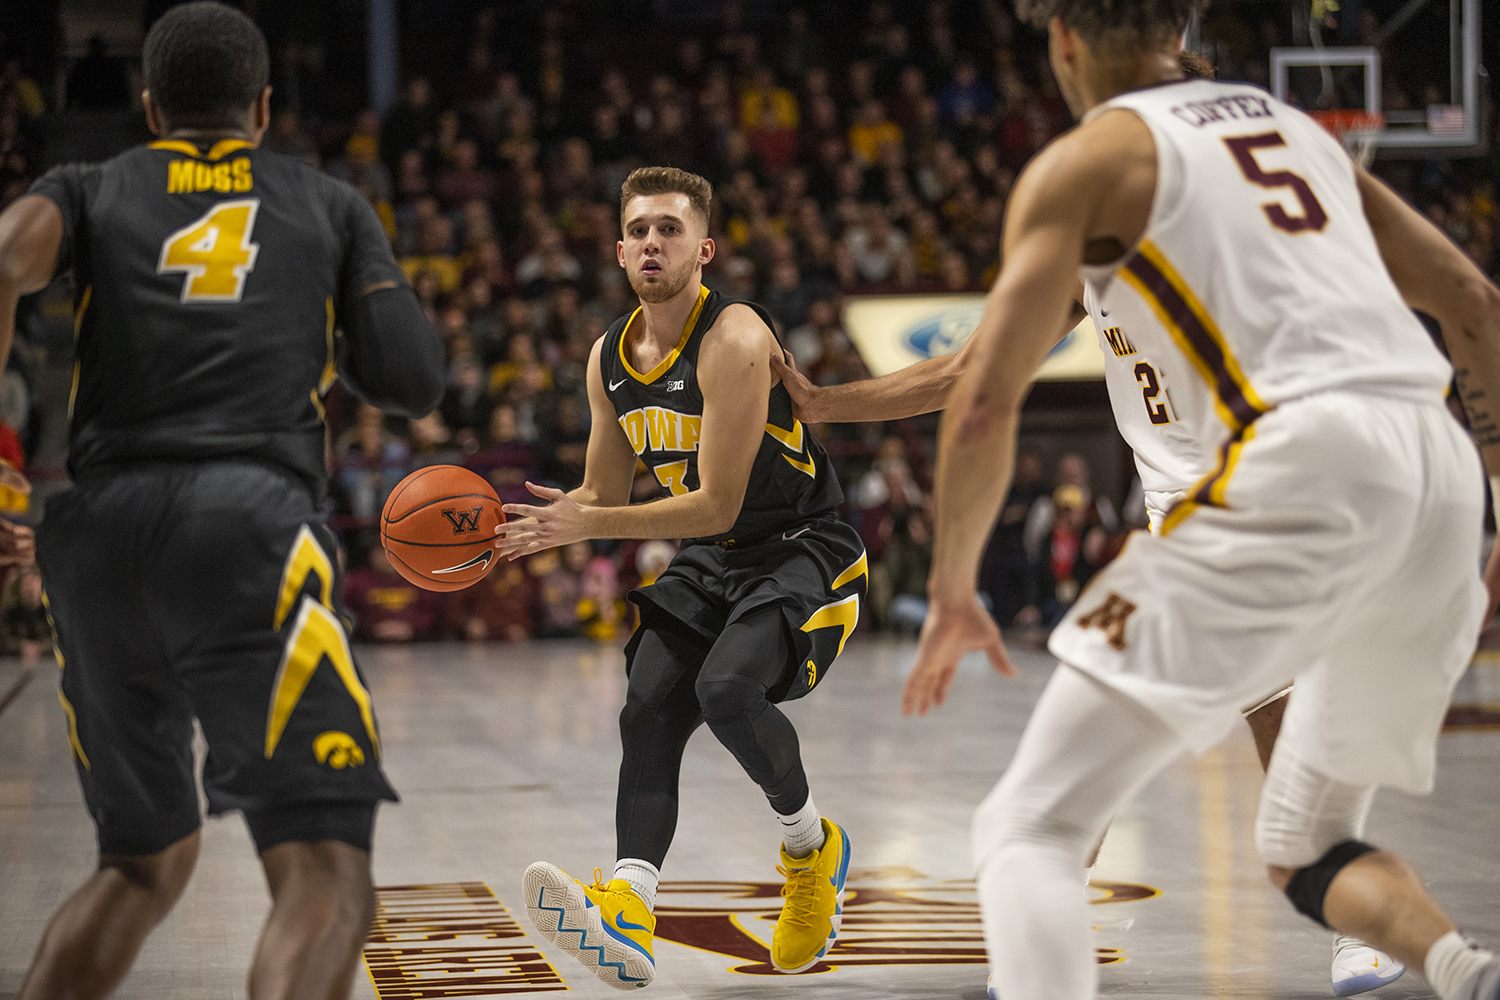 Iowa guard Jordan Bohannon readies a pass against Minnesota at Williams Arena on Sunday. The Gophers defeated the Hawkeyes, 92-87.